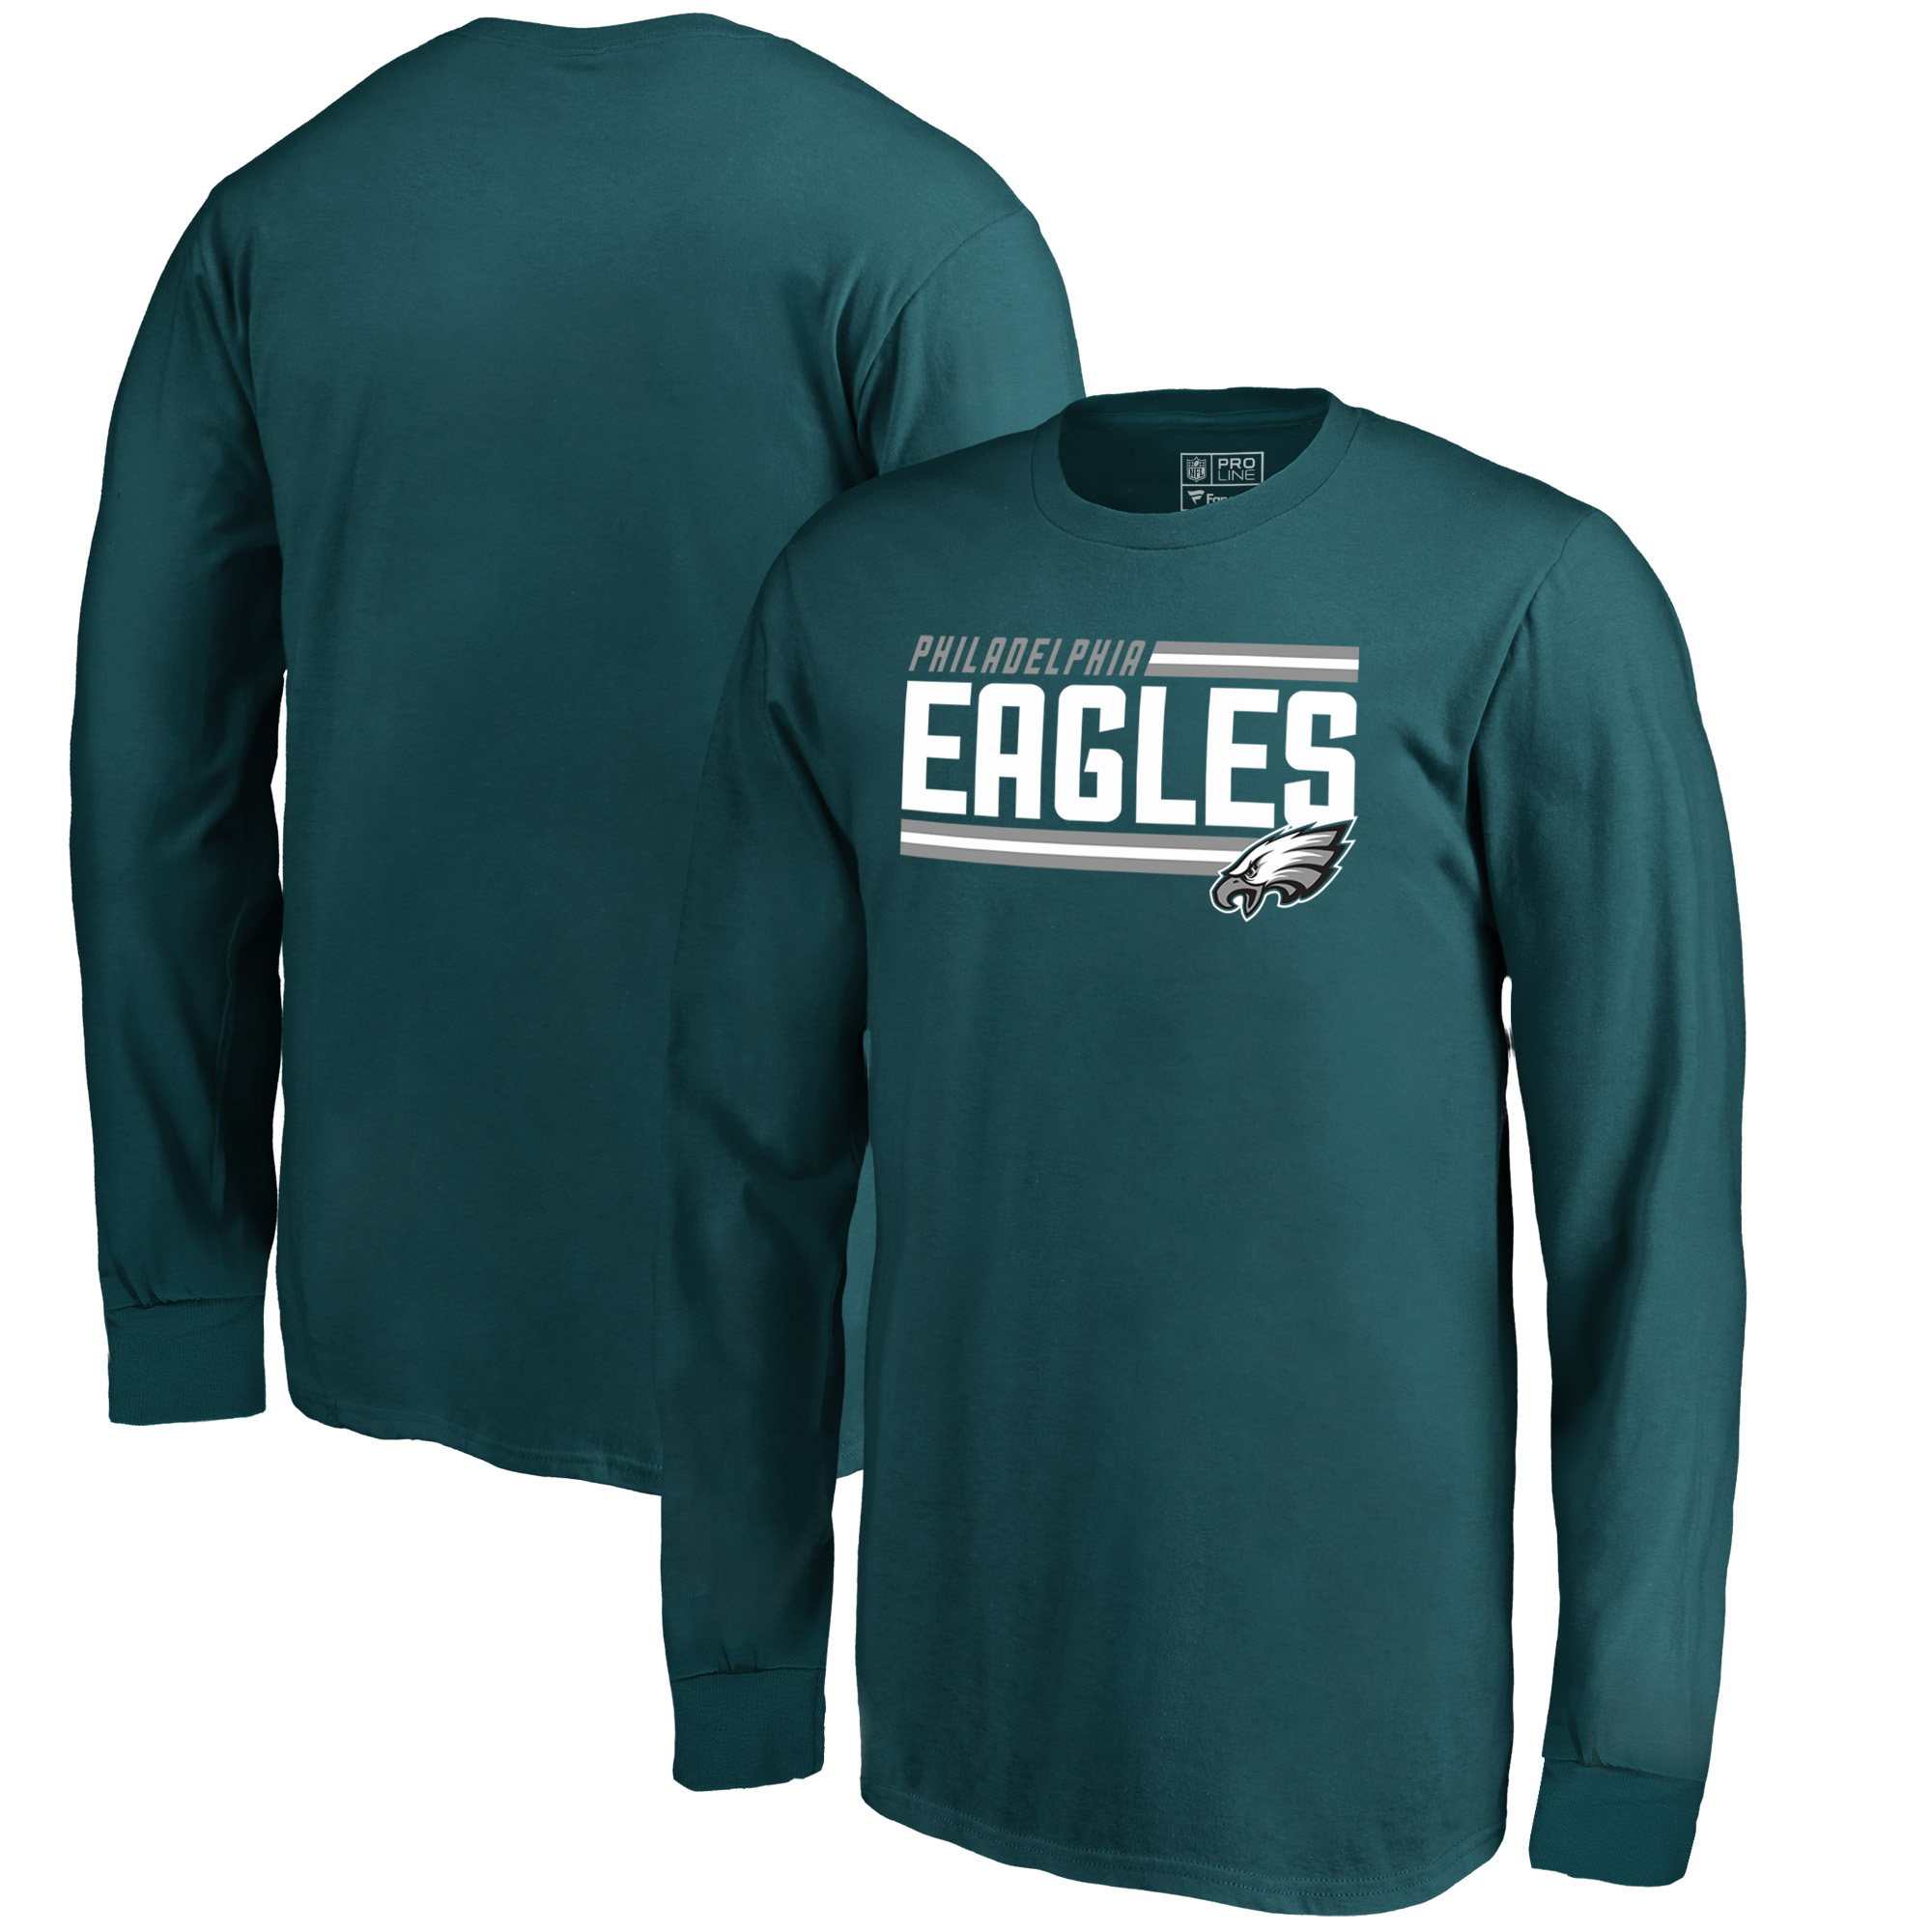 Philadelphia Eagles NFL Pro Line by Fanatics Branded Youth Iconic Collection On Side Stripe Long Sleeve T-Shirt - Midnight Green